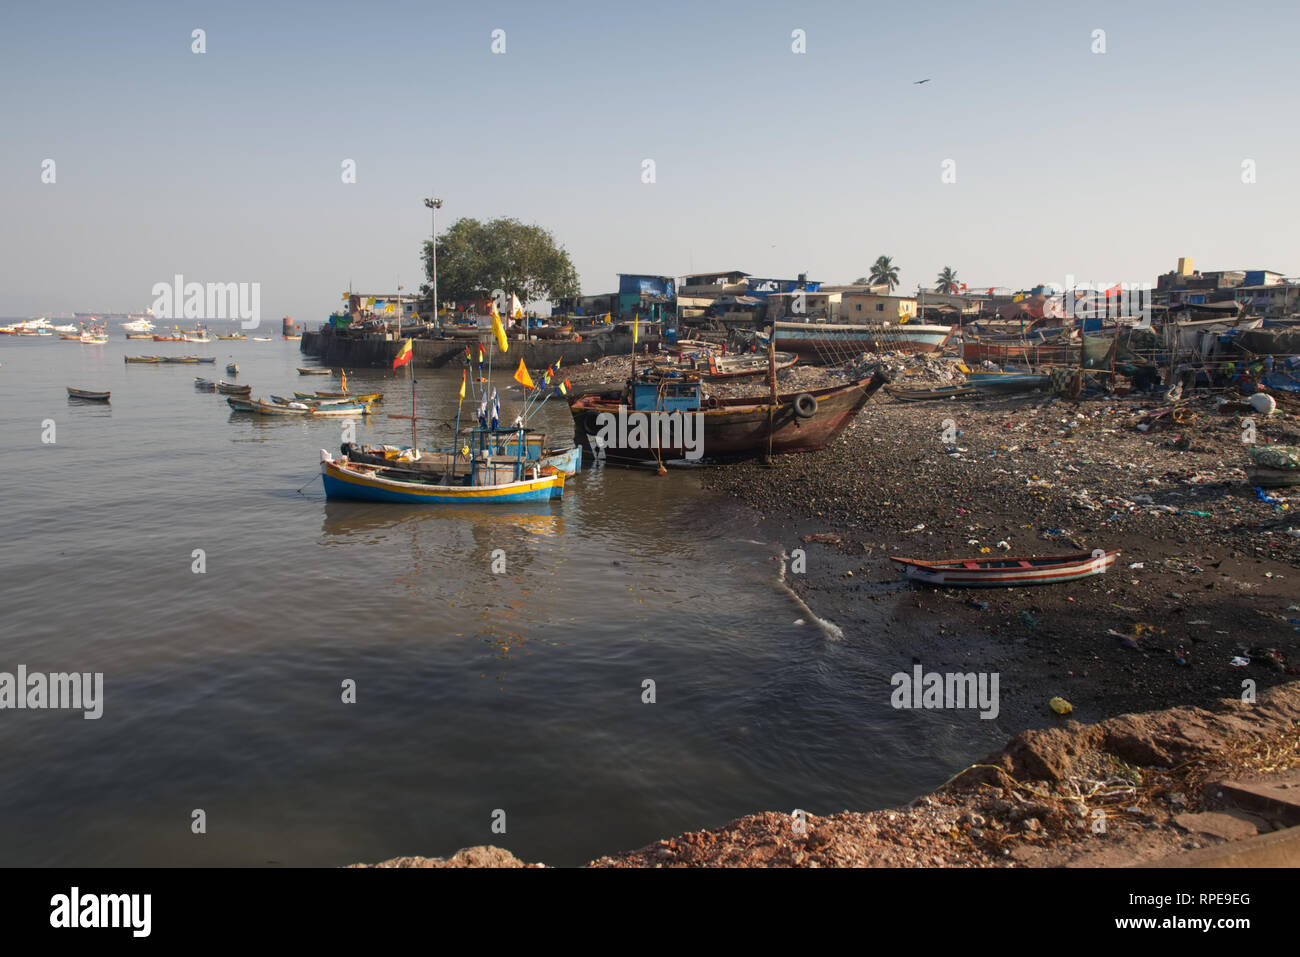 Marine littered beach adjacent Mumbai fishing village. Fisherfolk blame city development, pollution and over-fishing for the decline in fish stocks. - Stock Image